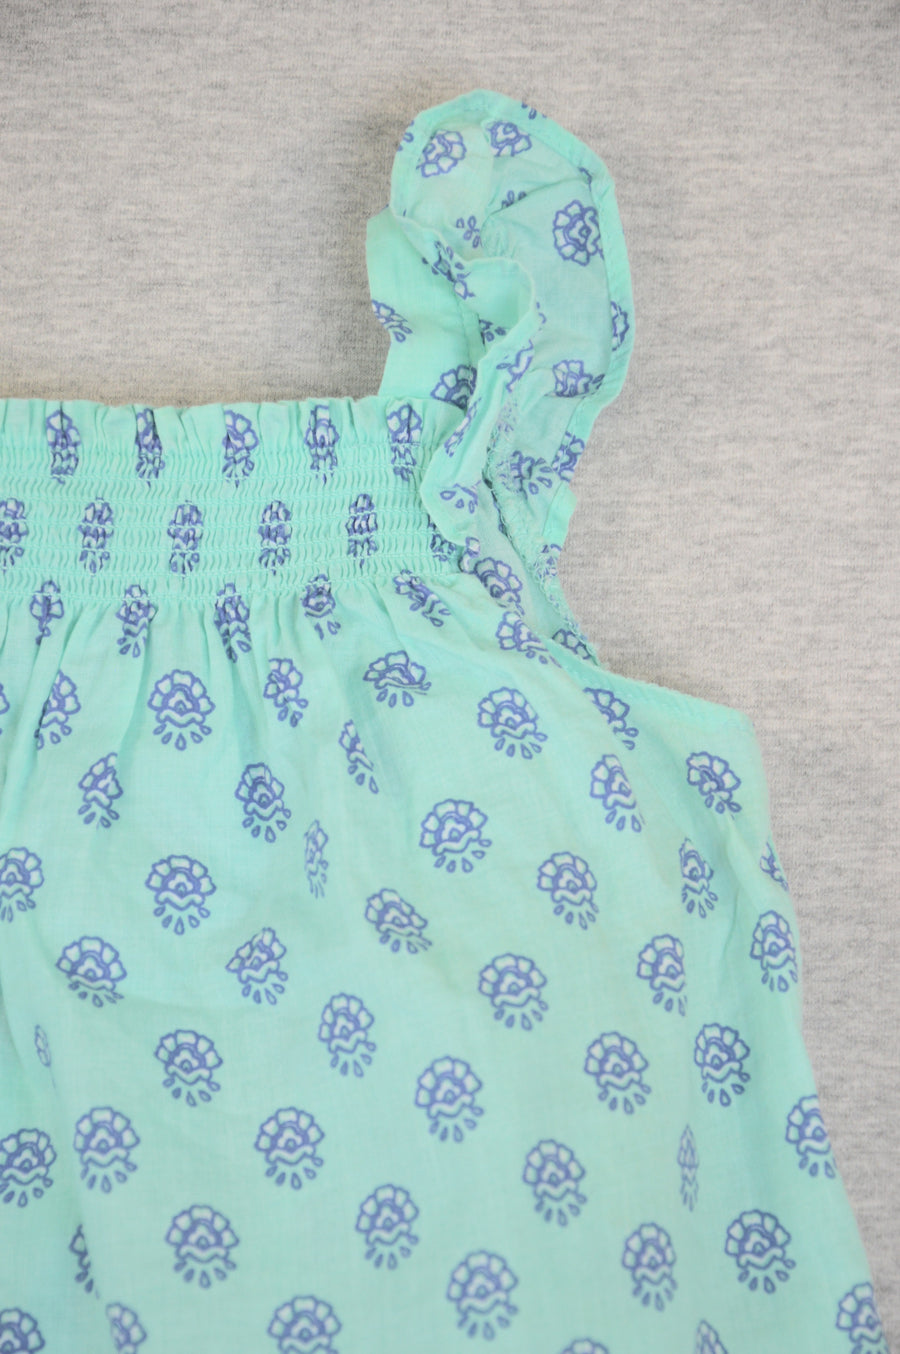 Carter's mint turquoise singlet & shorts set, size 12m